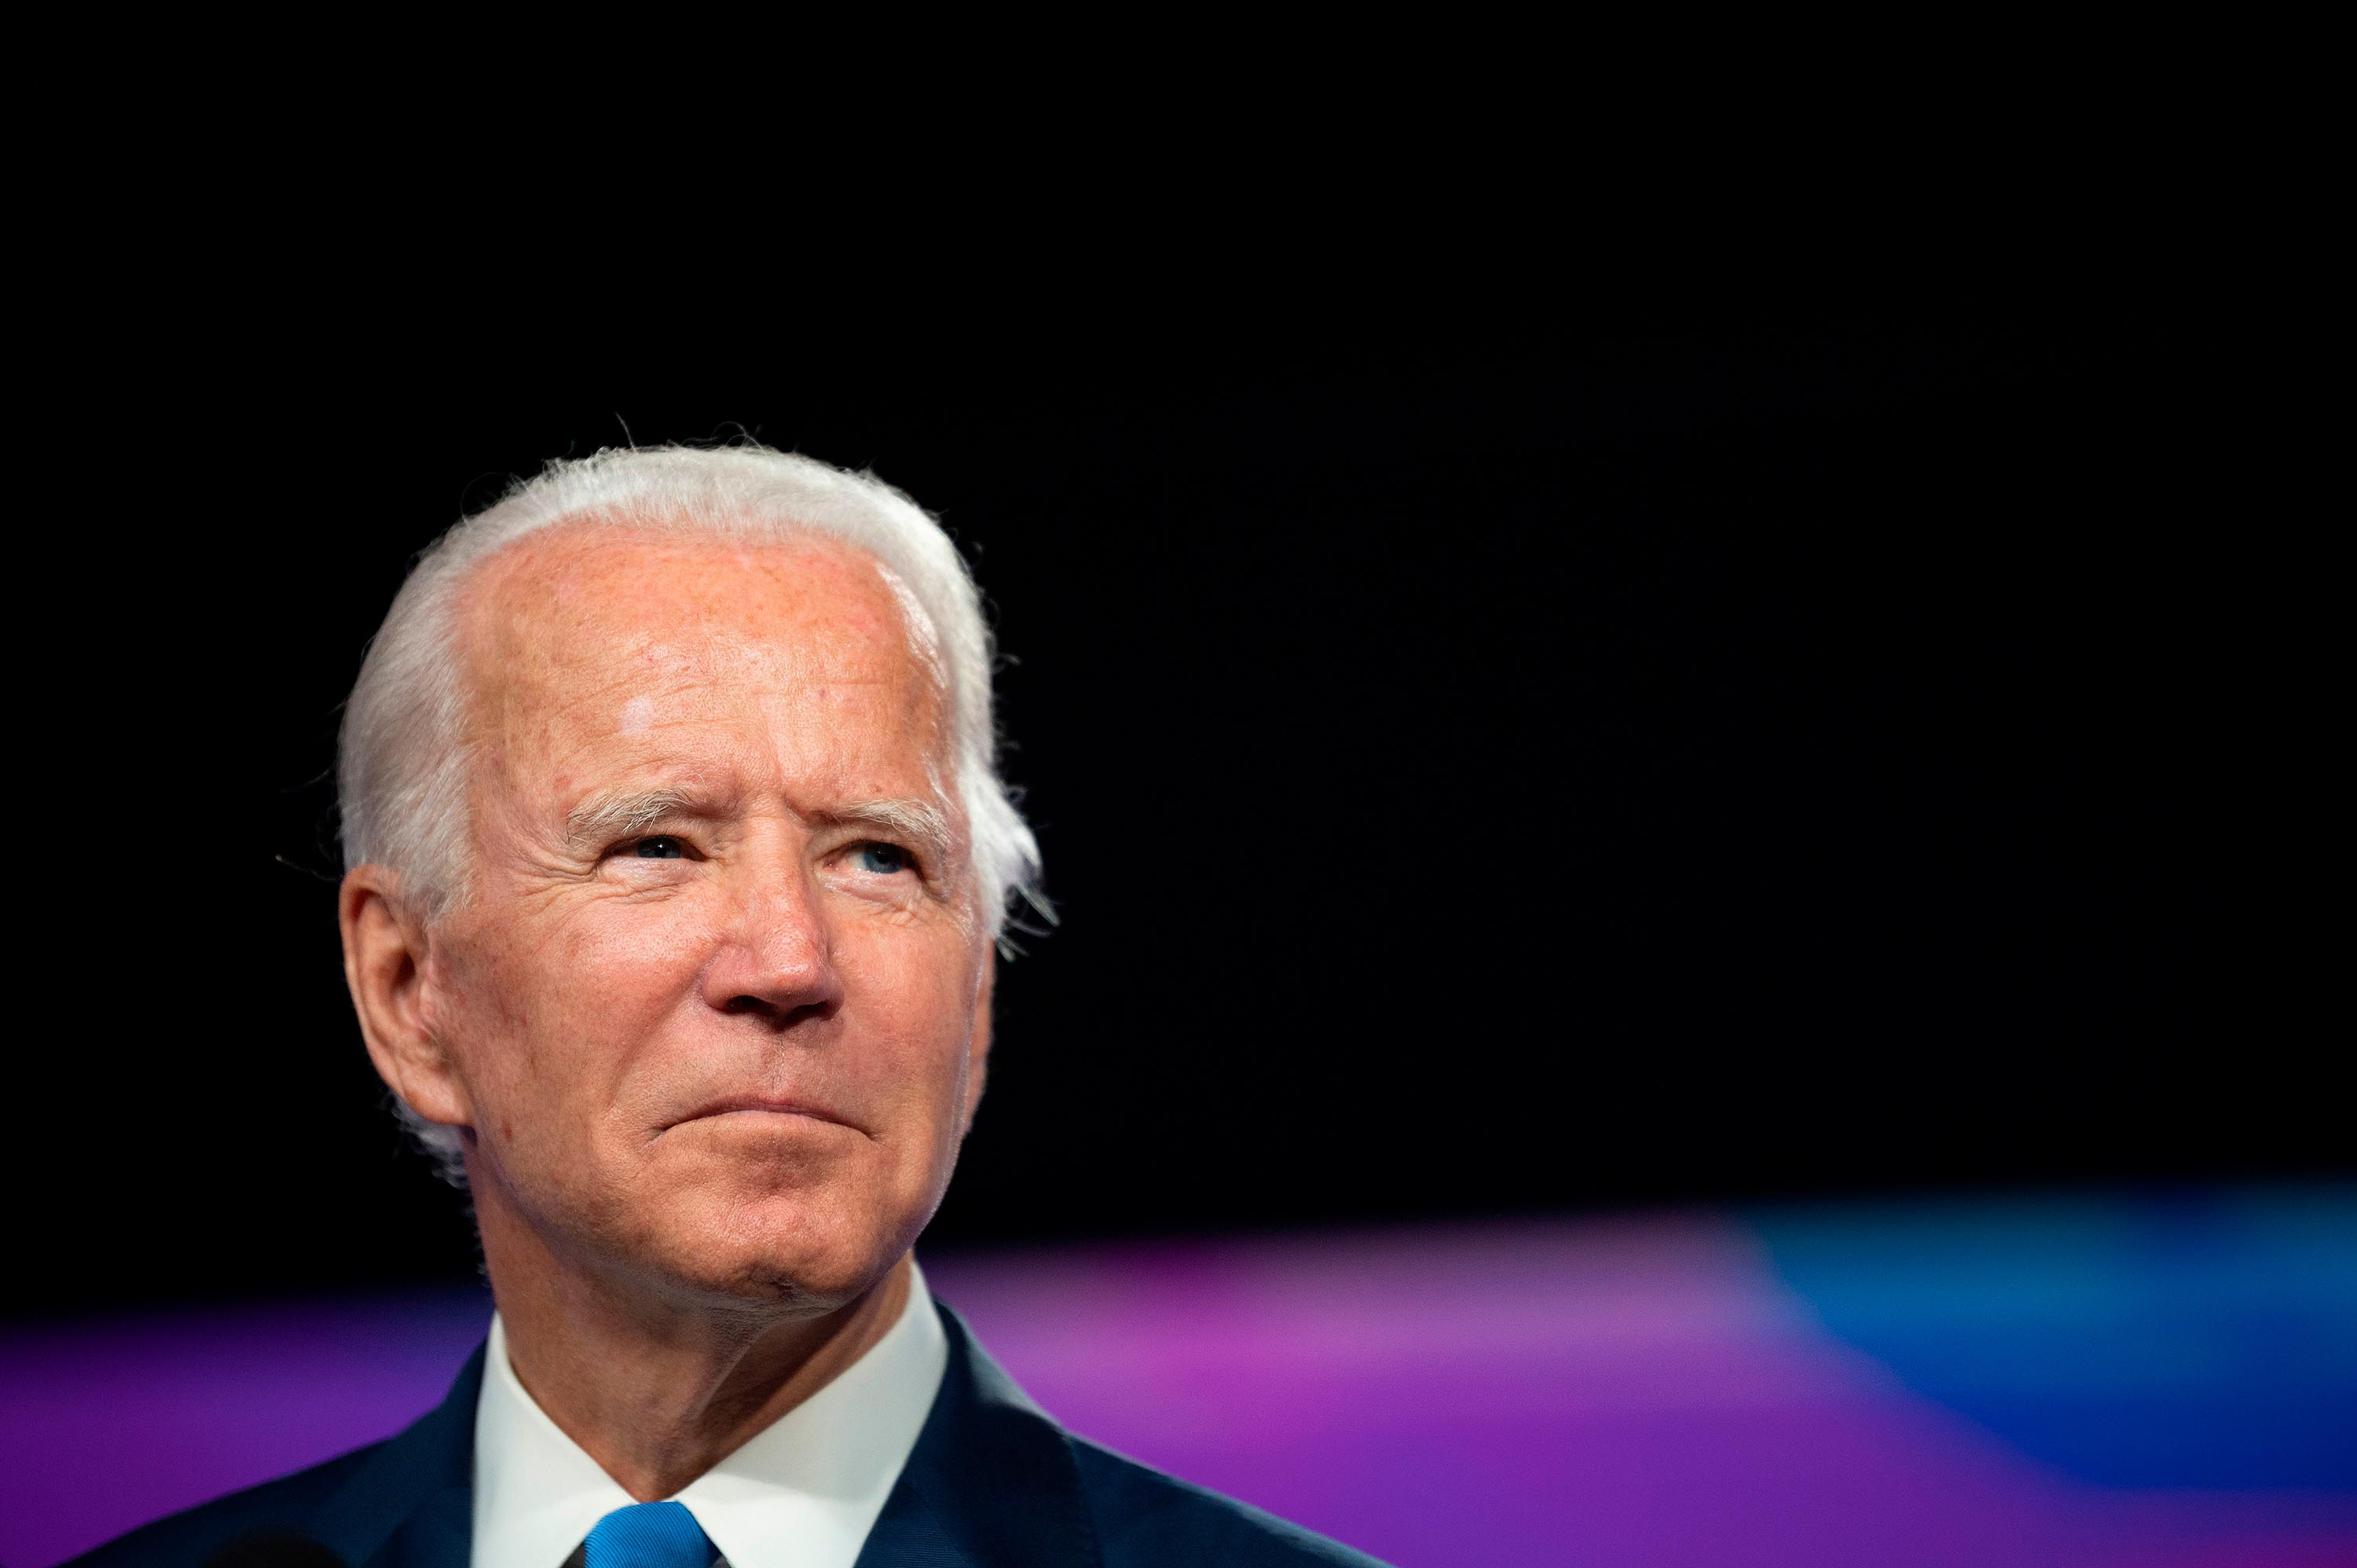 Biden campaign announces largest week of ad spending as November election nears